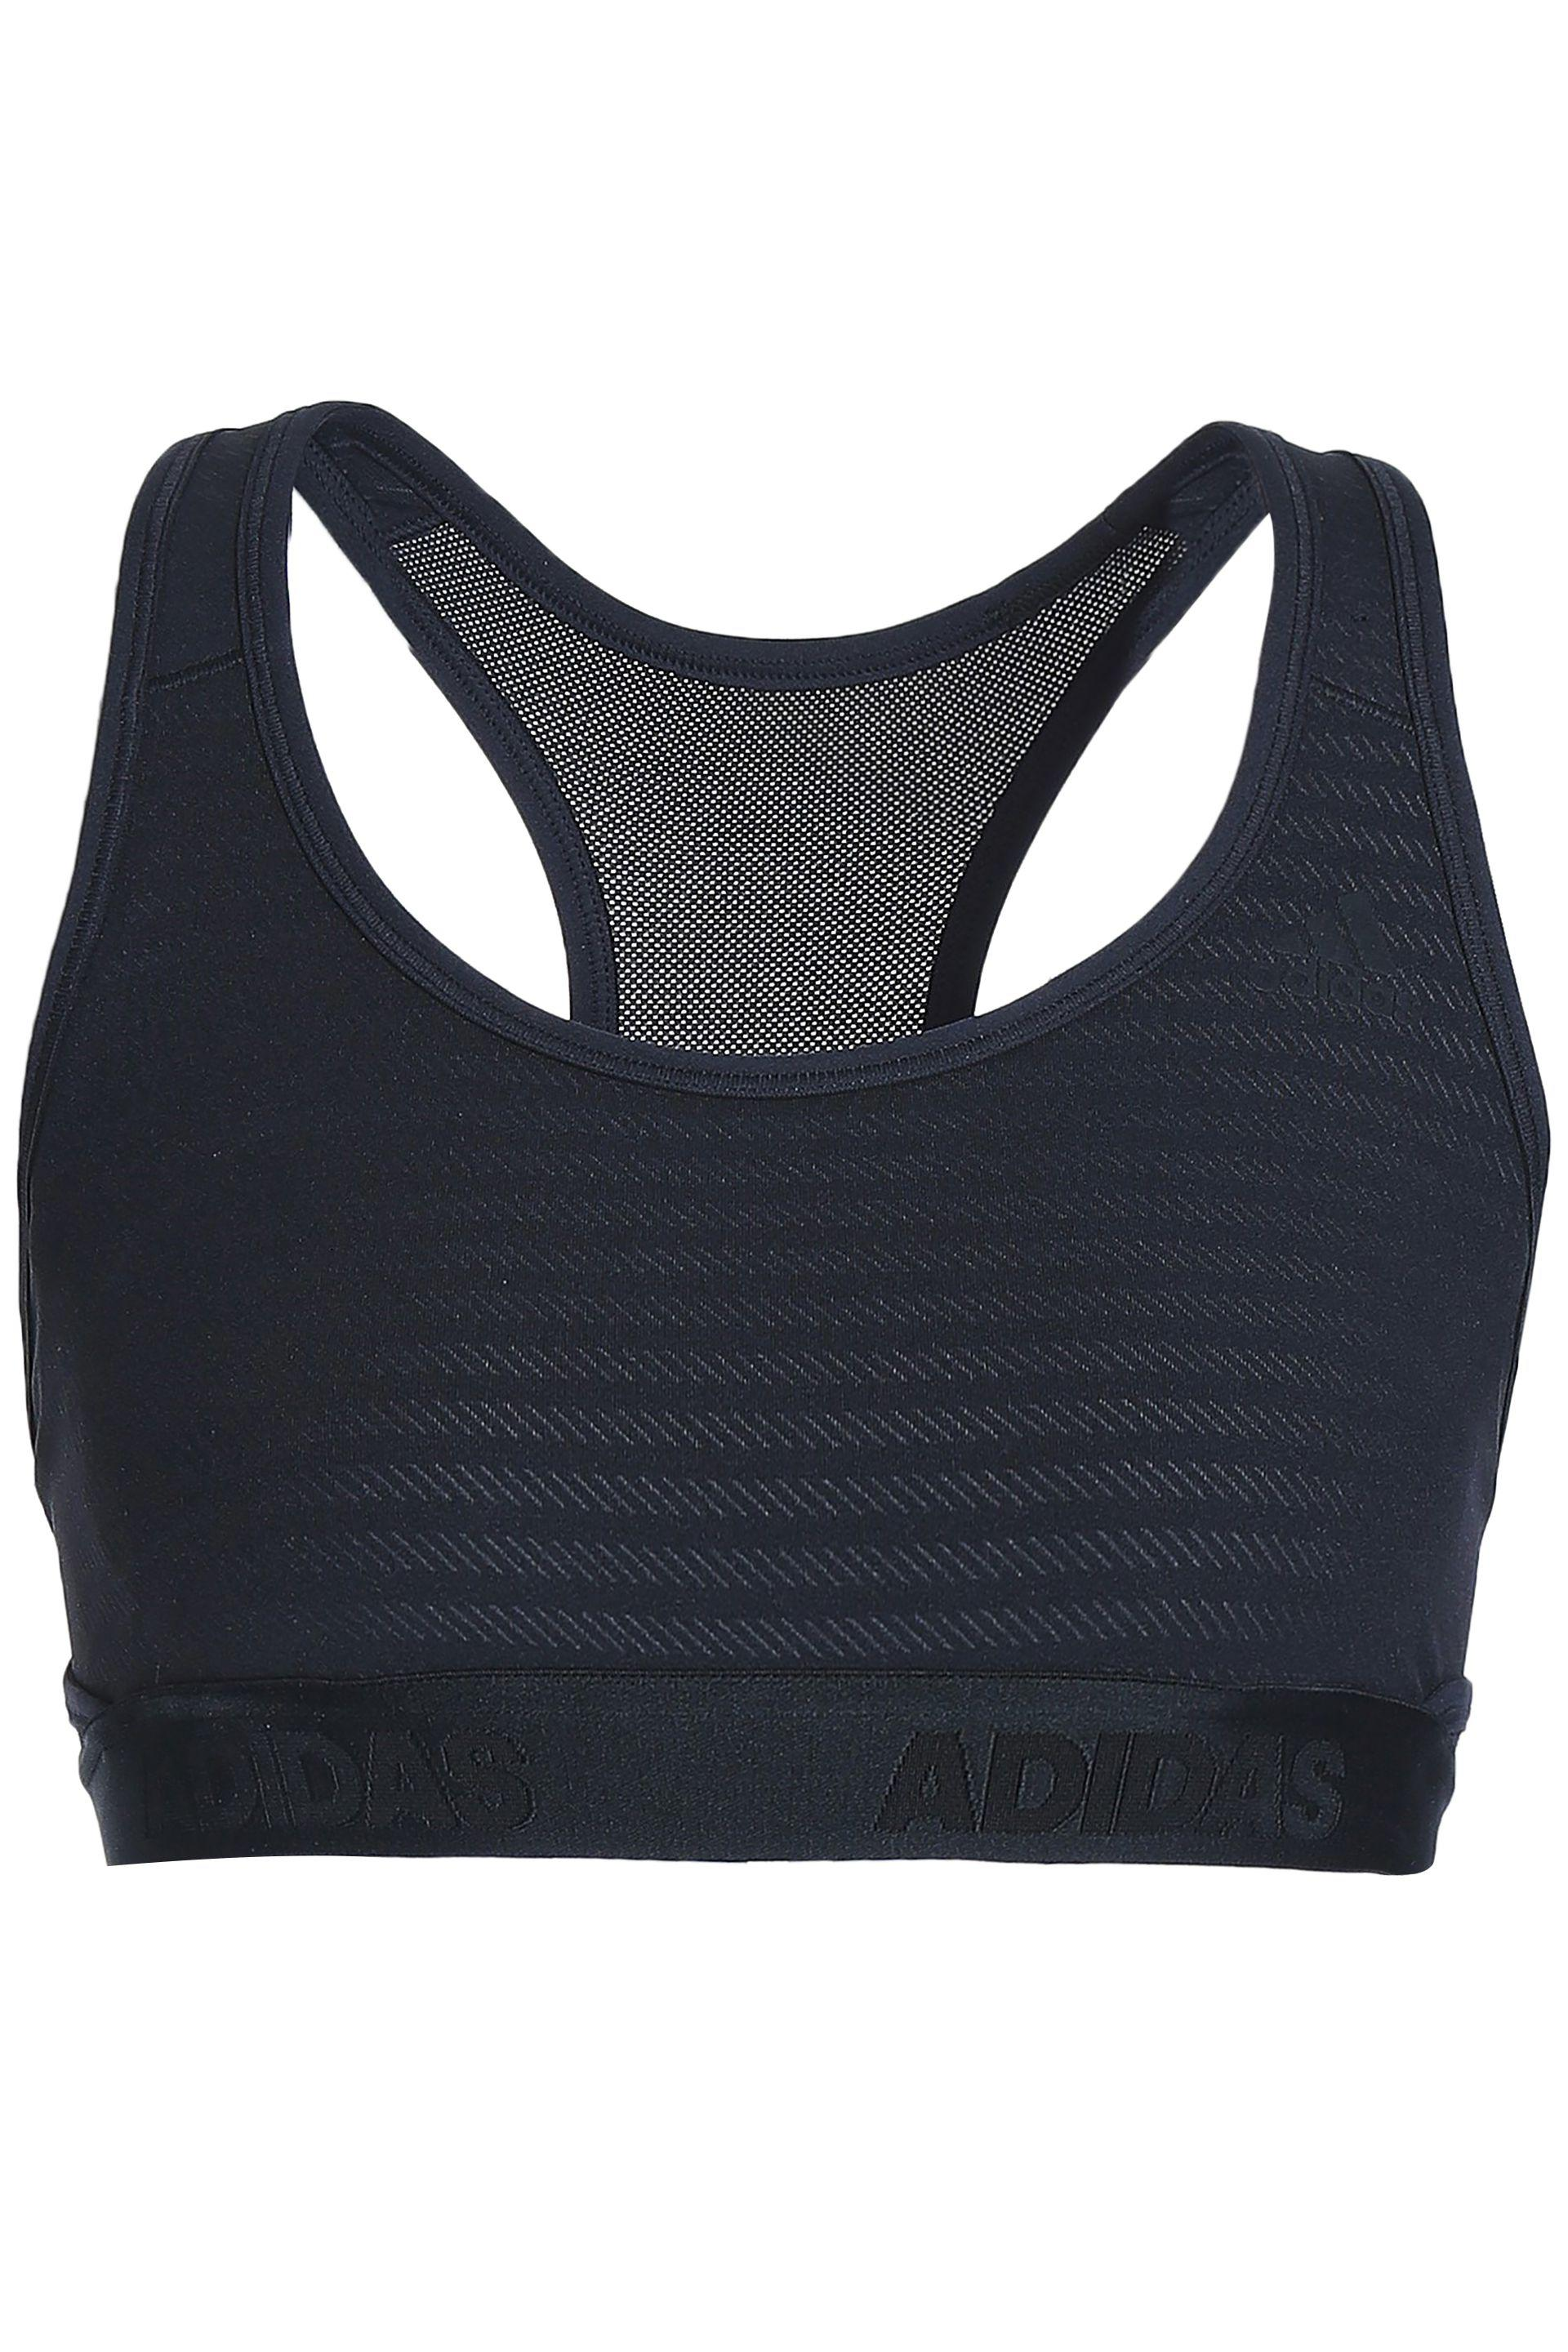 4a0ef1d44c Adidas Mesh-paneled Stretch-jersey Sports Bra in Black - Lyst